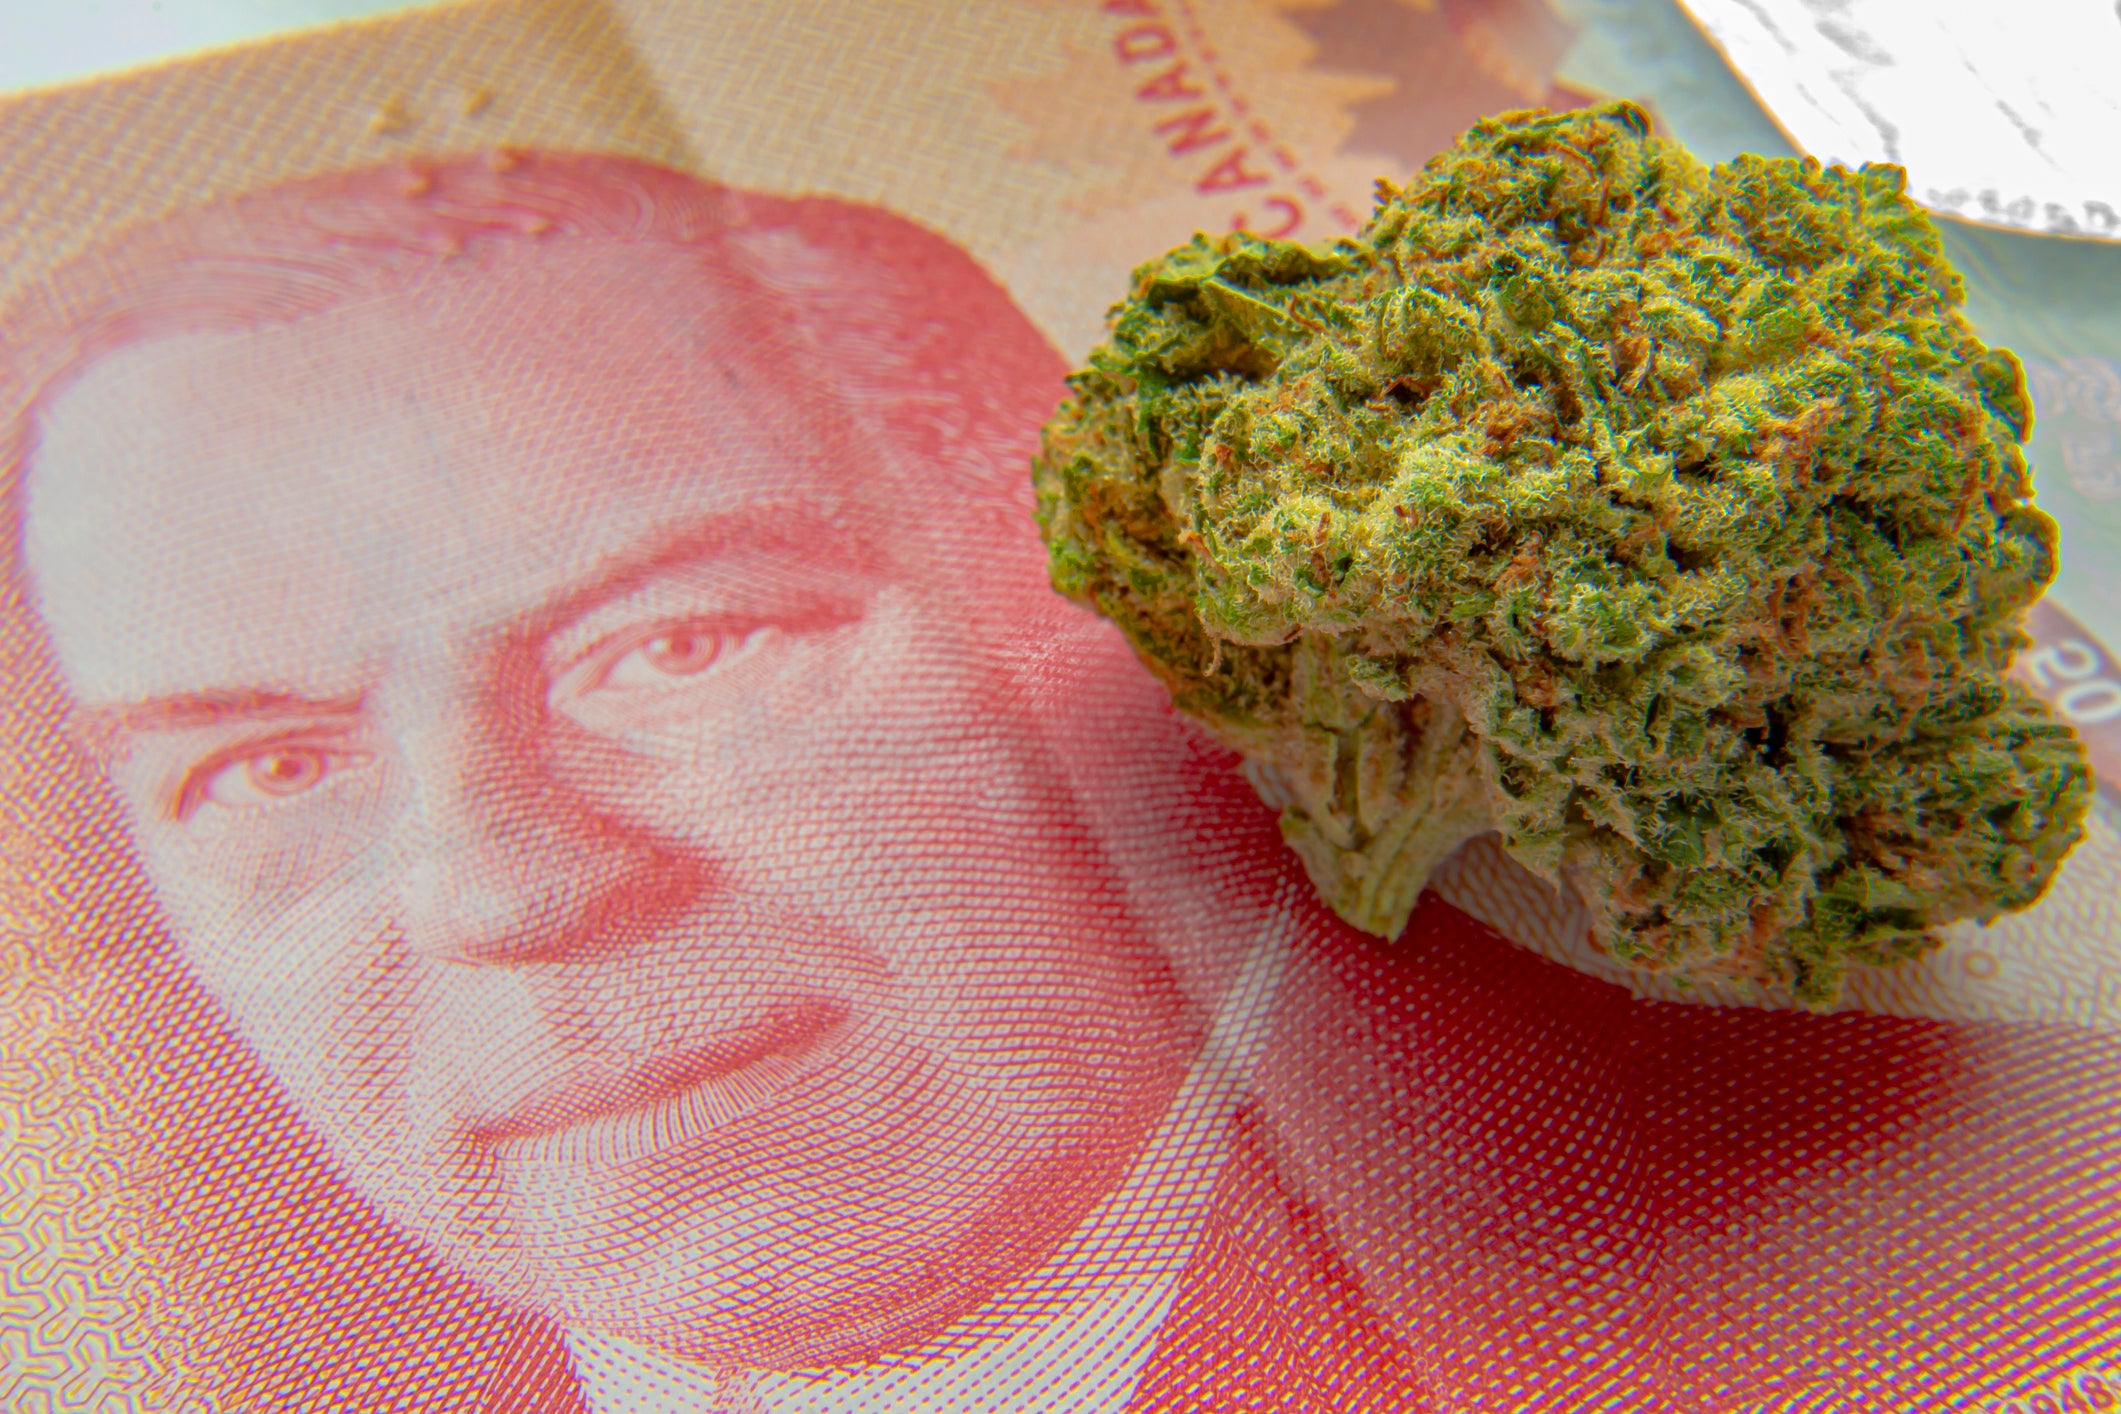 HEXO to Raise Up to 1.2 Billion Canadian Dollars in Fresh Capital